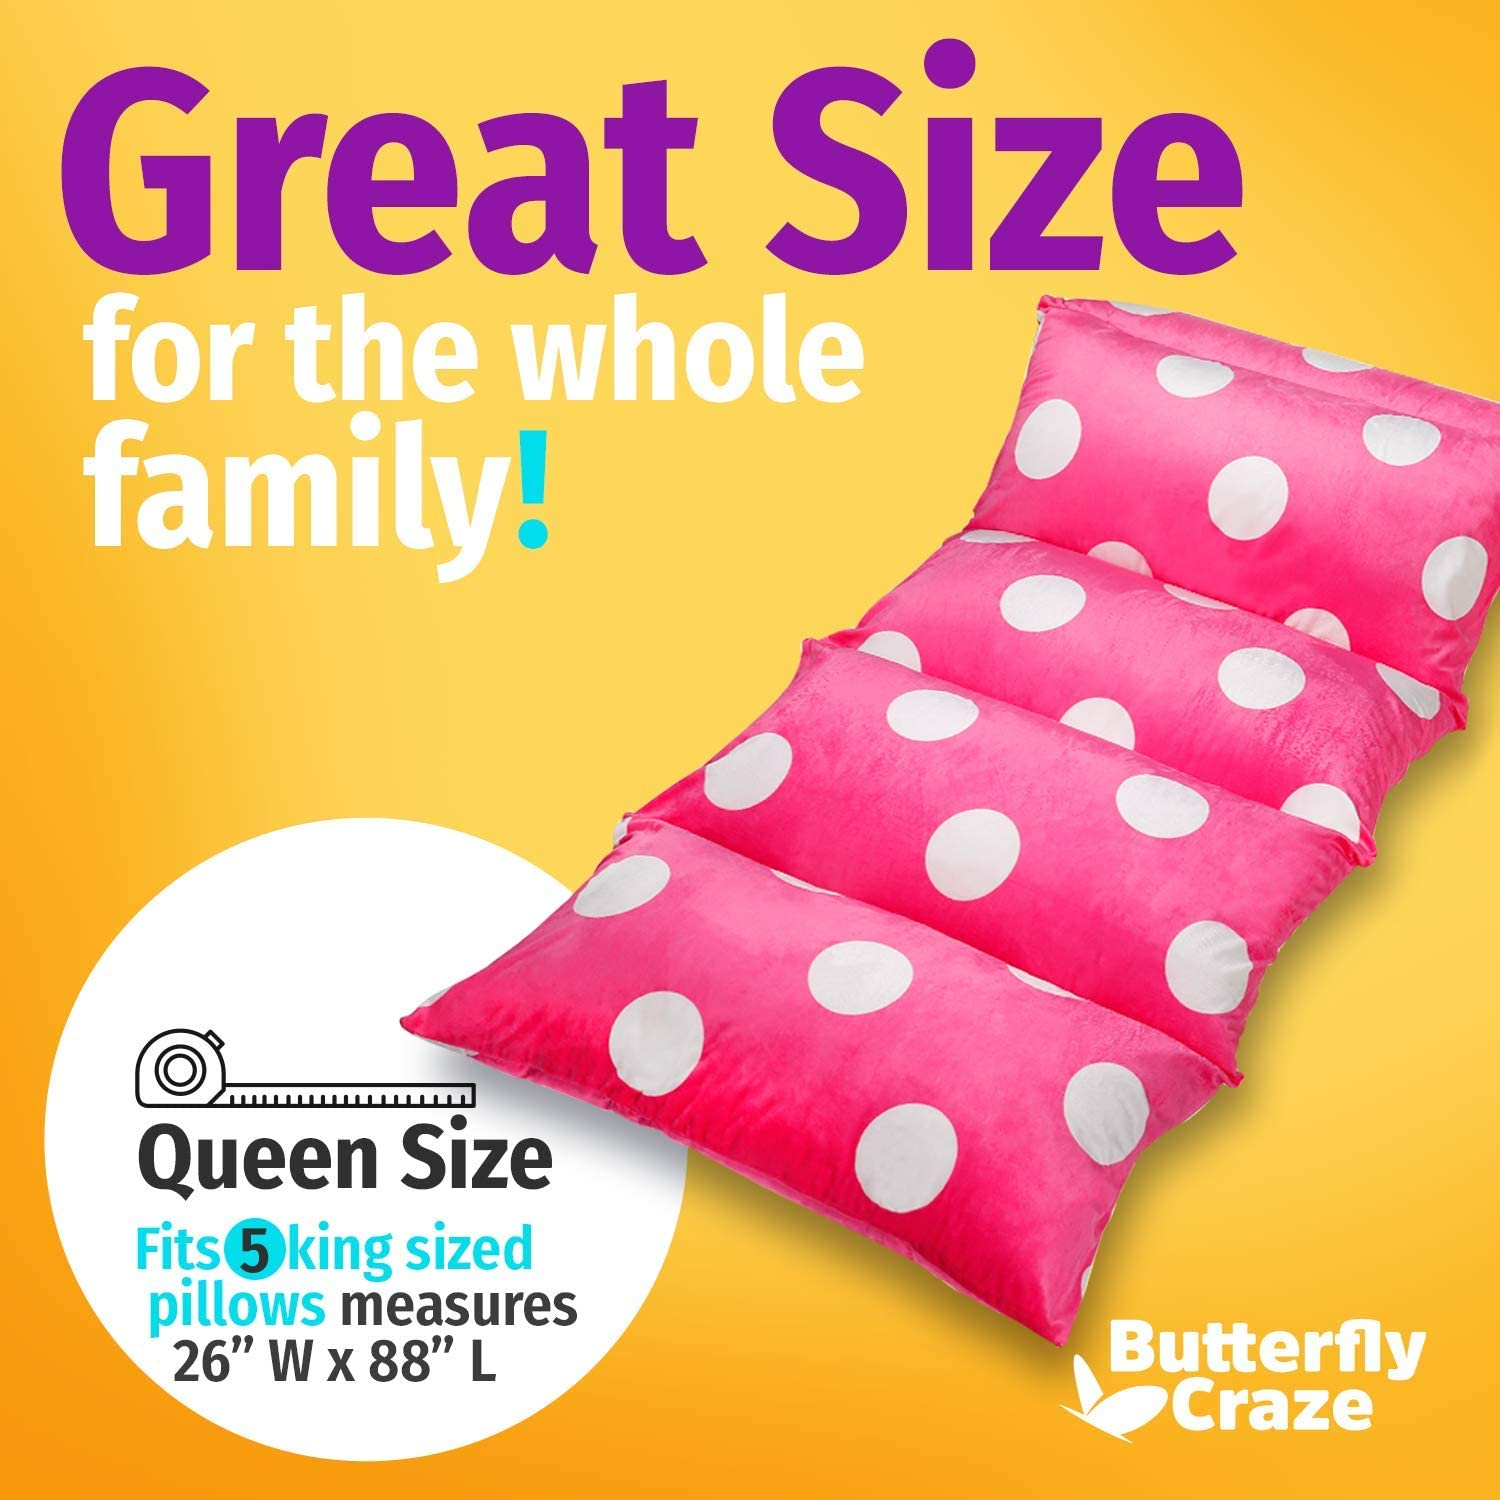 Butterfly Craze Pillow Bed Floor Lounger Cover Perfect for Pillow Recliners /& Kid Beds for Reading Playing Games or at a Sleepover or Slumber Party Queen Light Pink Polka Dot